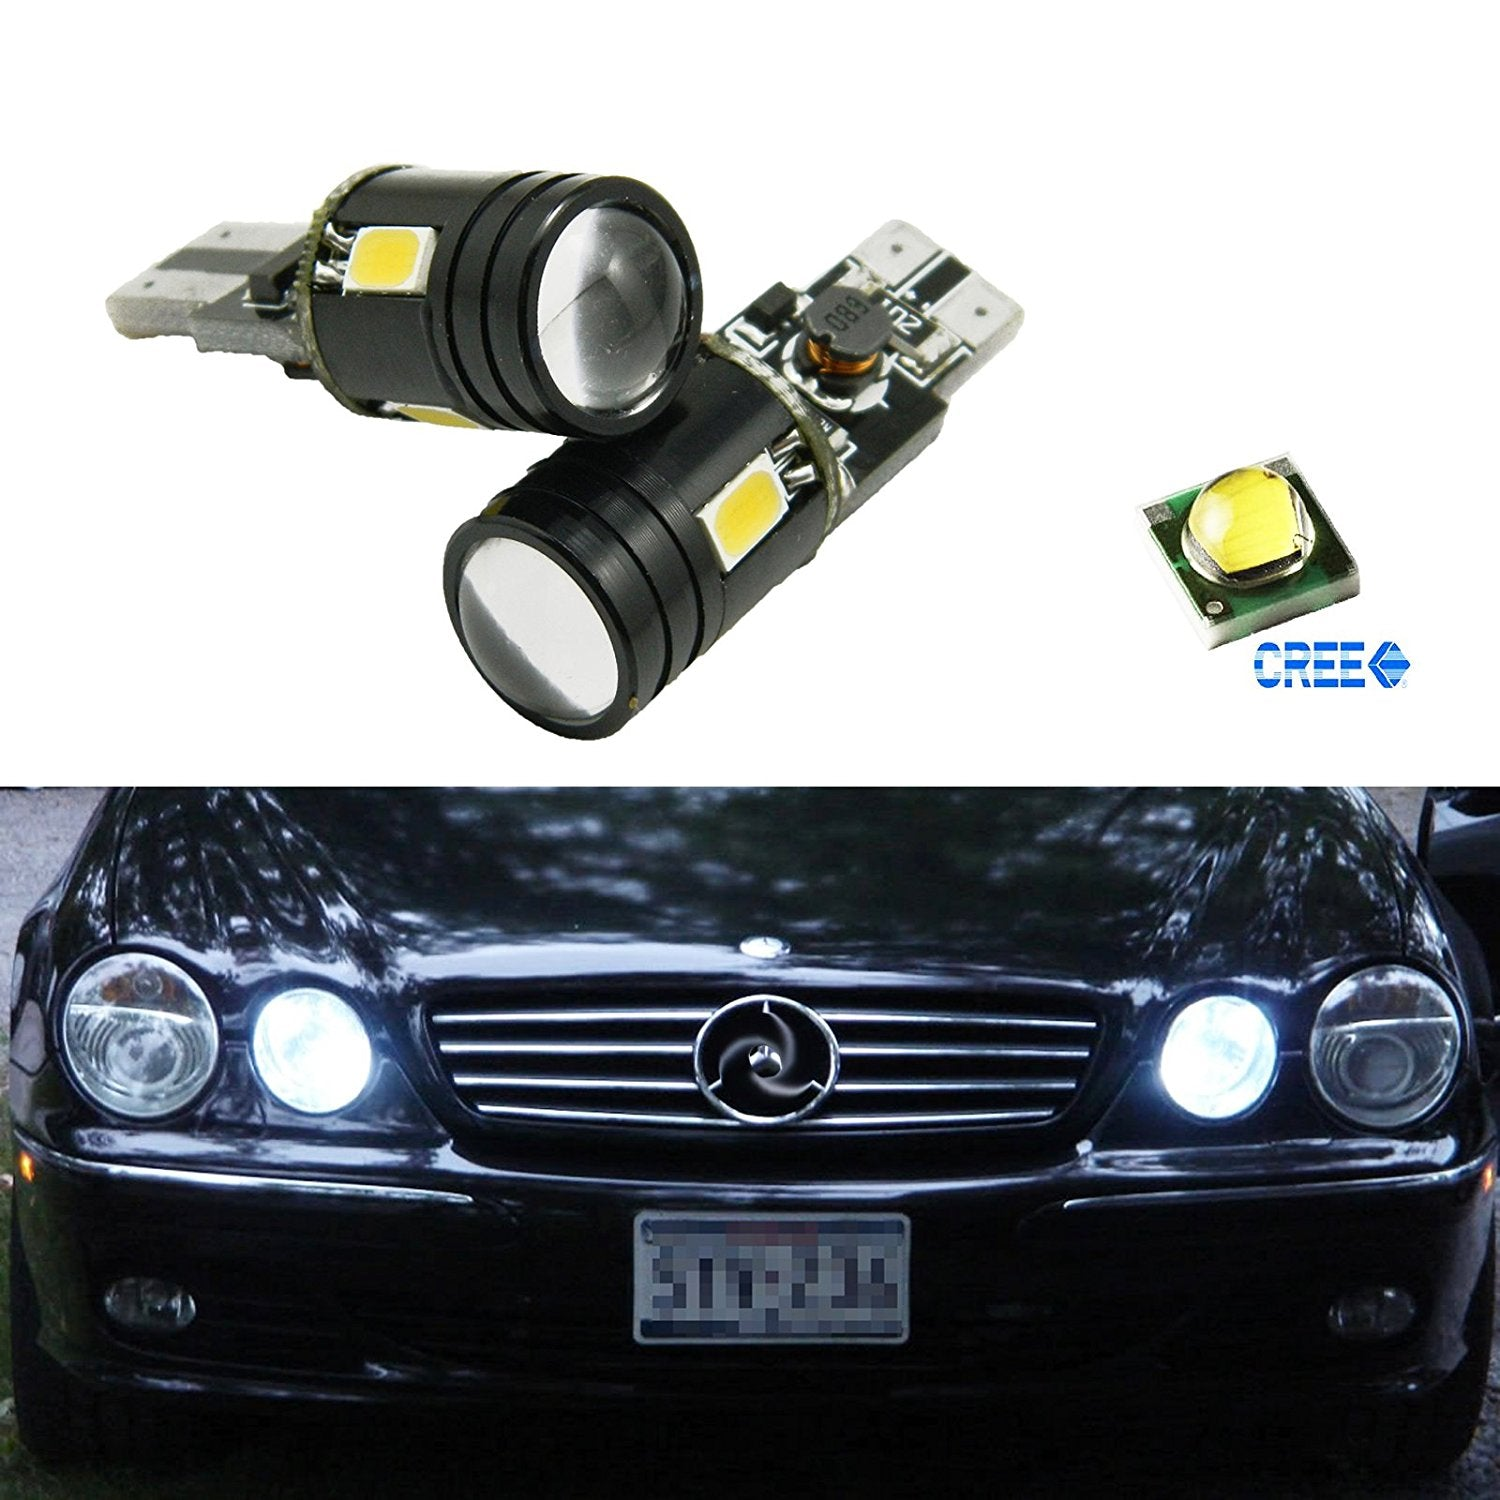 White Position Light Power Parking Bulbs 9w Cree Led High 912 Car CBoxdWre